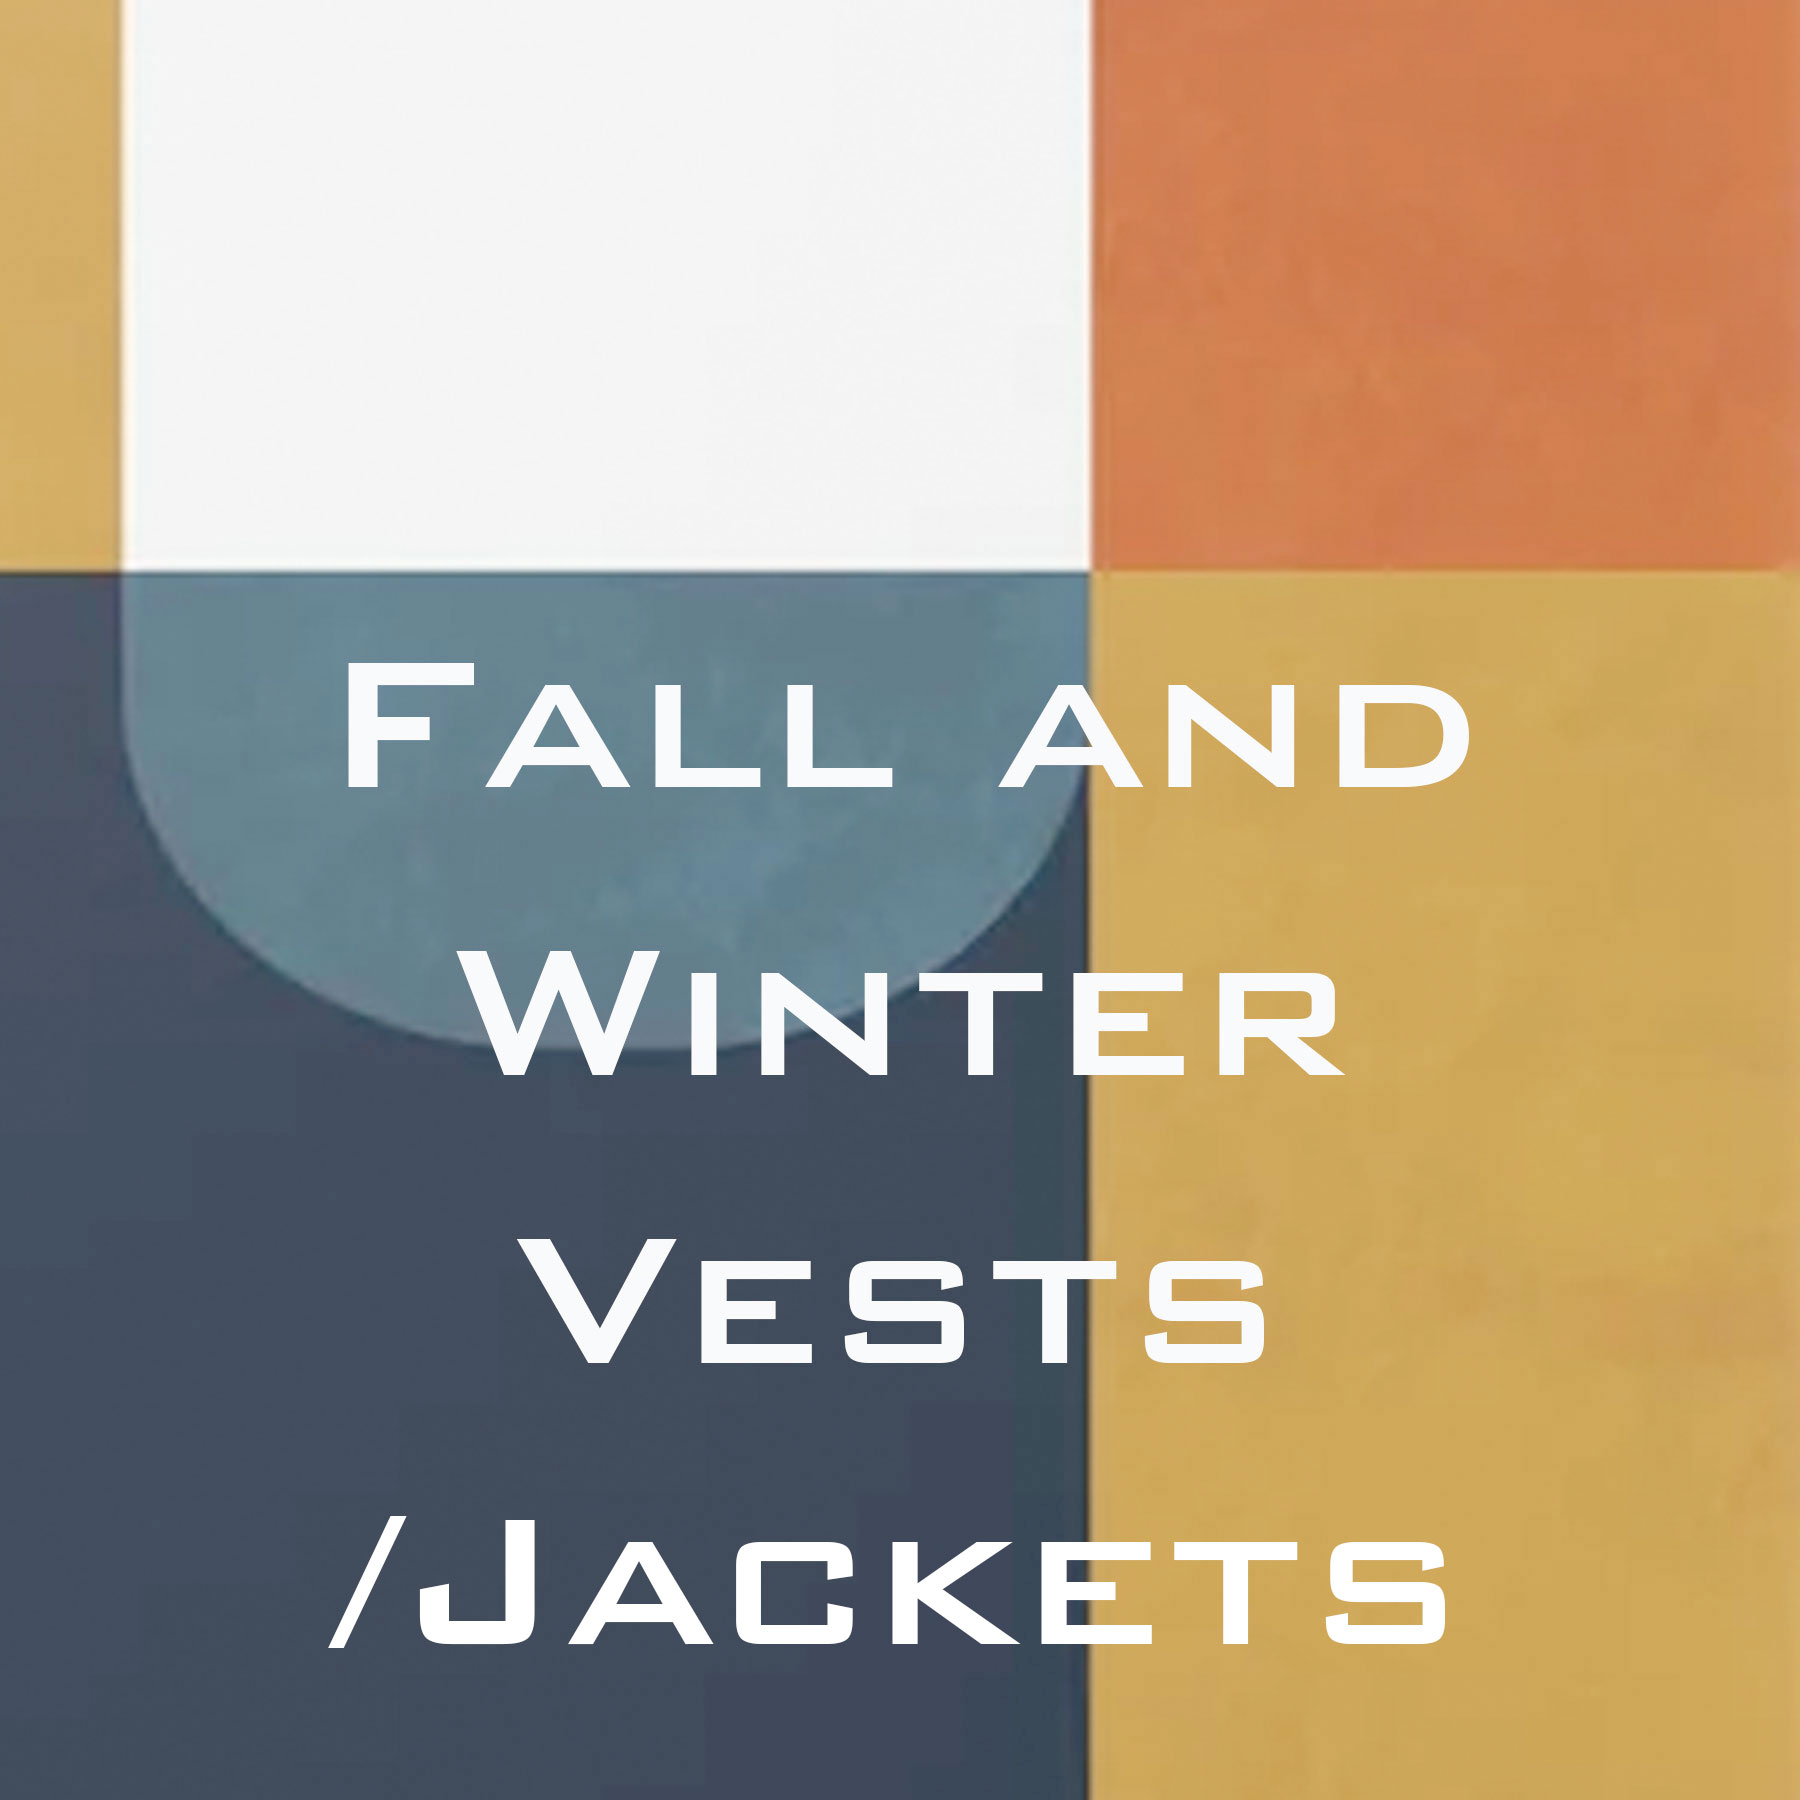 Wholesale Fall and Winter Vests and Jackets